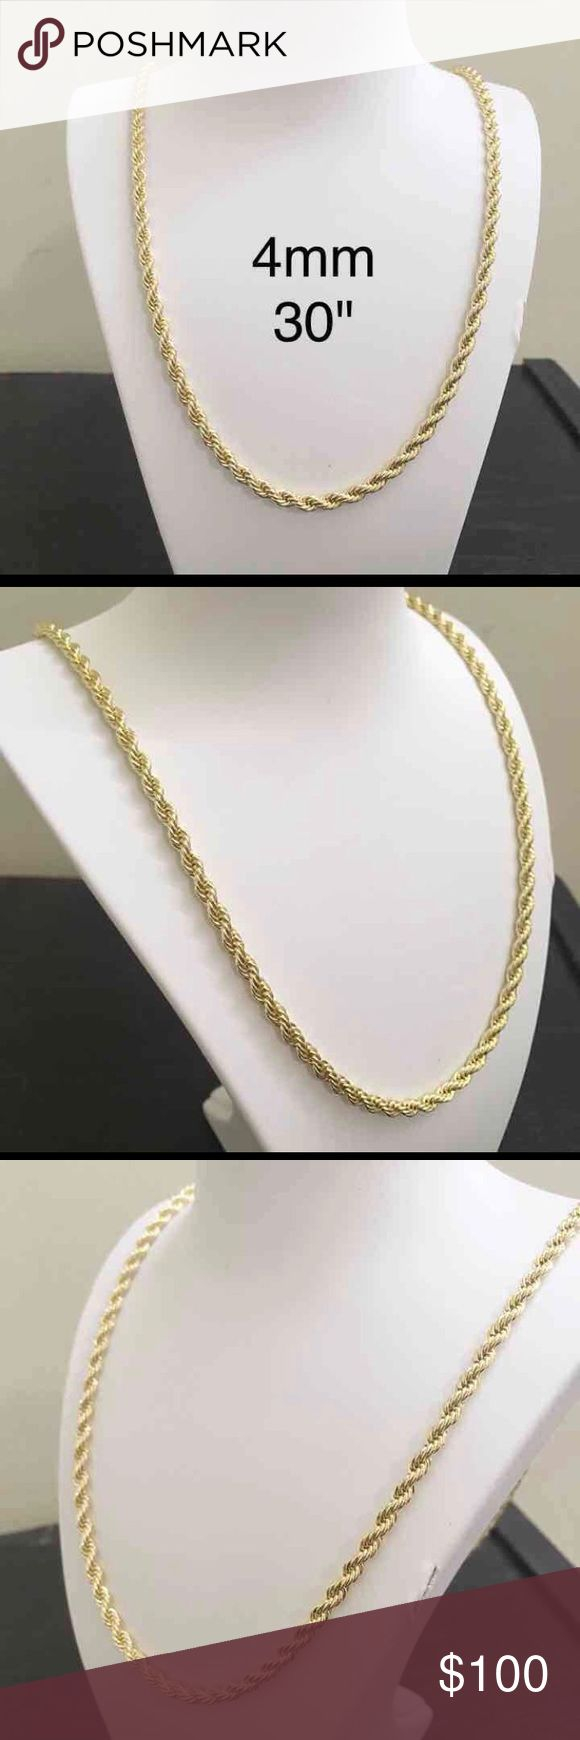 """14K Gold Rope Chain 4mm 30"""" • Gold Filled  • Rope Chain • 4mm Thick • 30 Inch Length • 14k Stamped • Made In Italy  • Nice & Heavy • Hip Hop Chain • Lobster Lock • Brand New • Chain Color Will Never Fade  Why Gold Filled? Unlike Gold Plating Which Over Time Wears Off Gold Filled Will Never Fade In Shine. It's Also Great For Sensation Skin. Don't Miss Out On This Chain. Accessories Jewelry"""